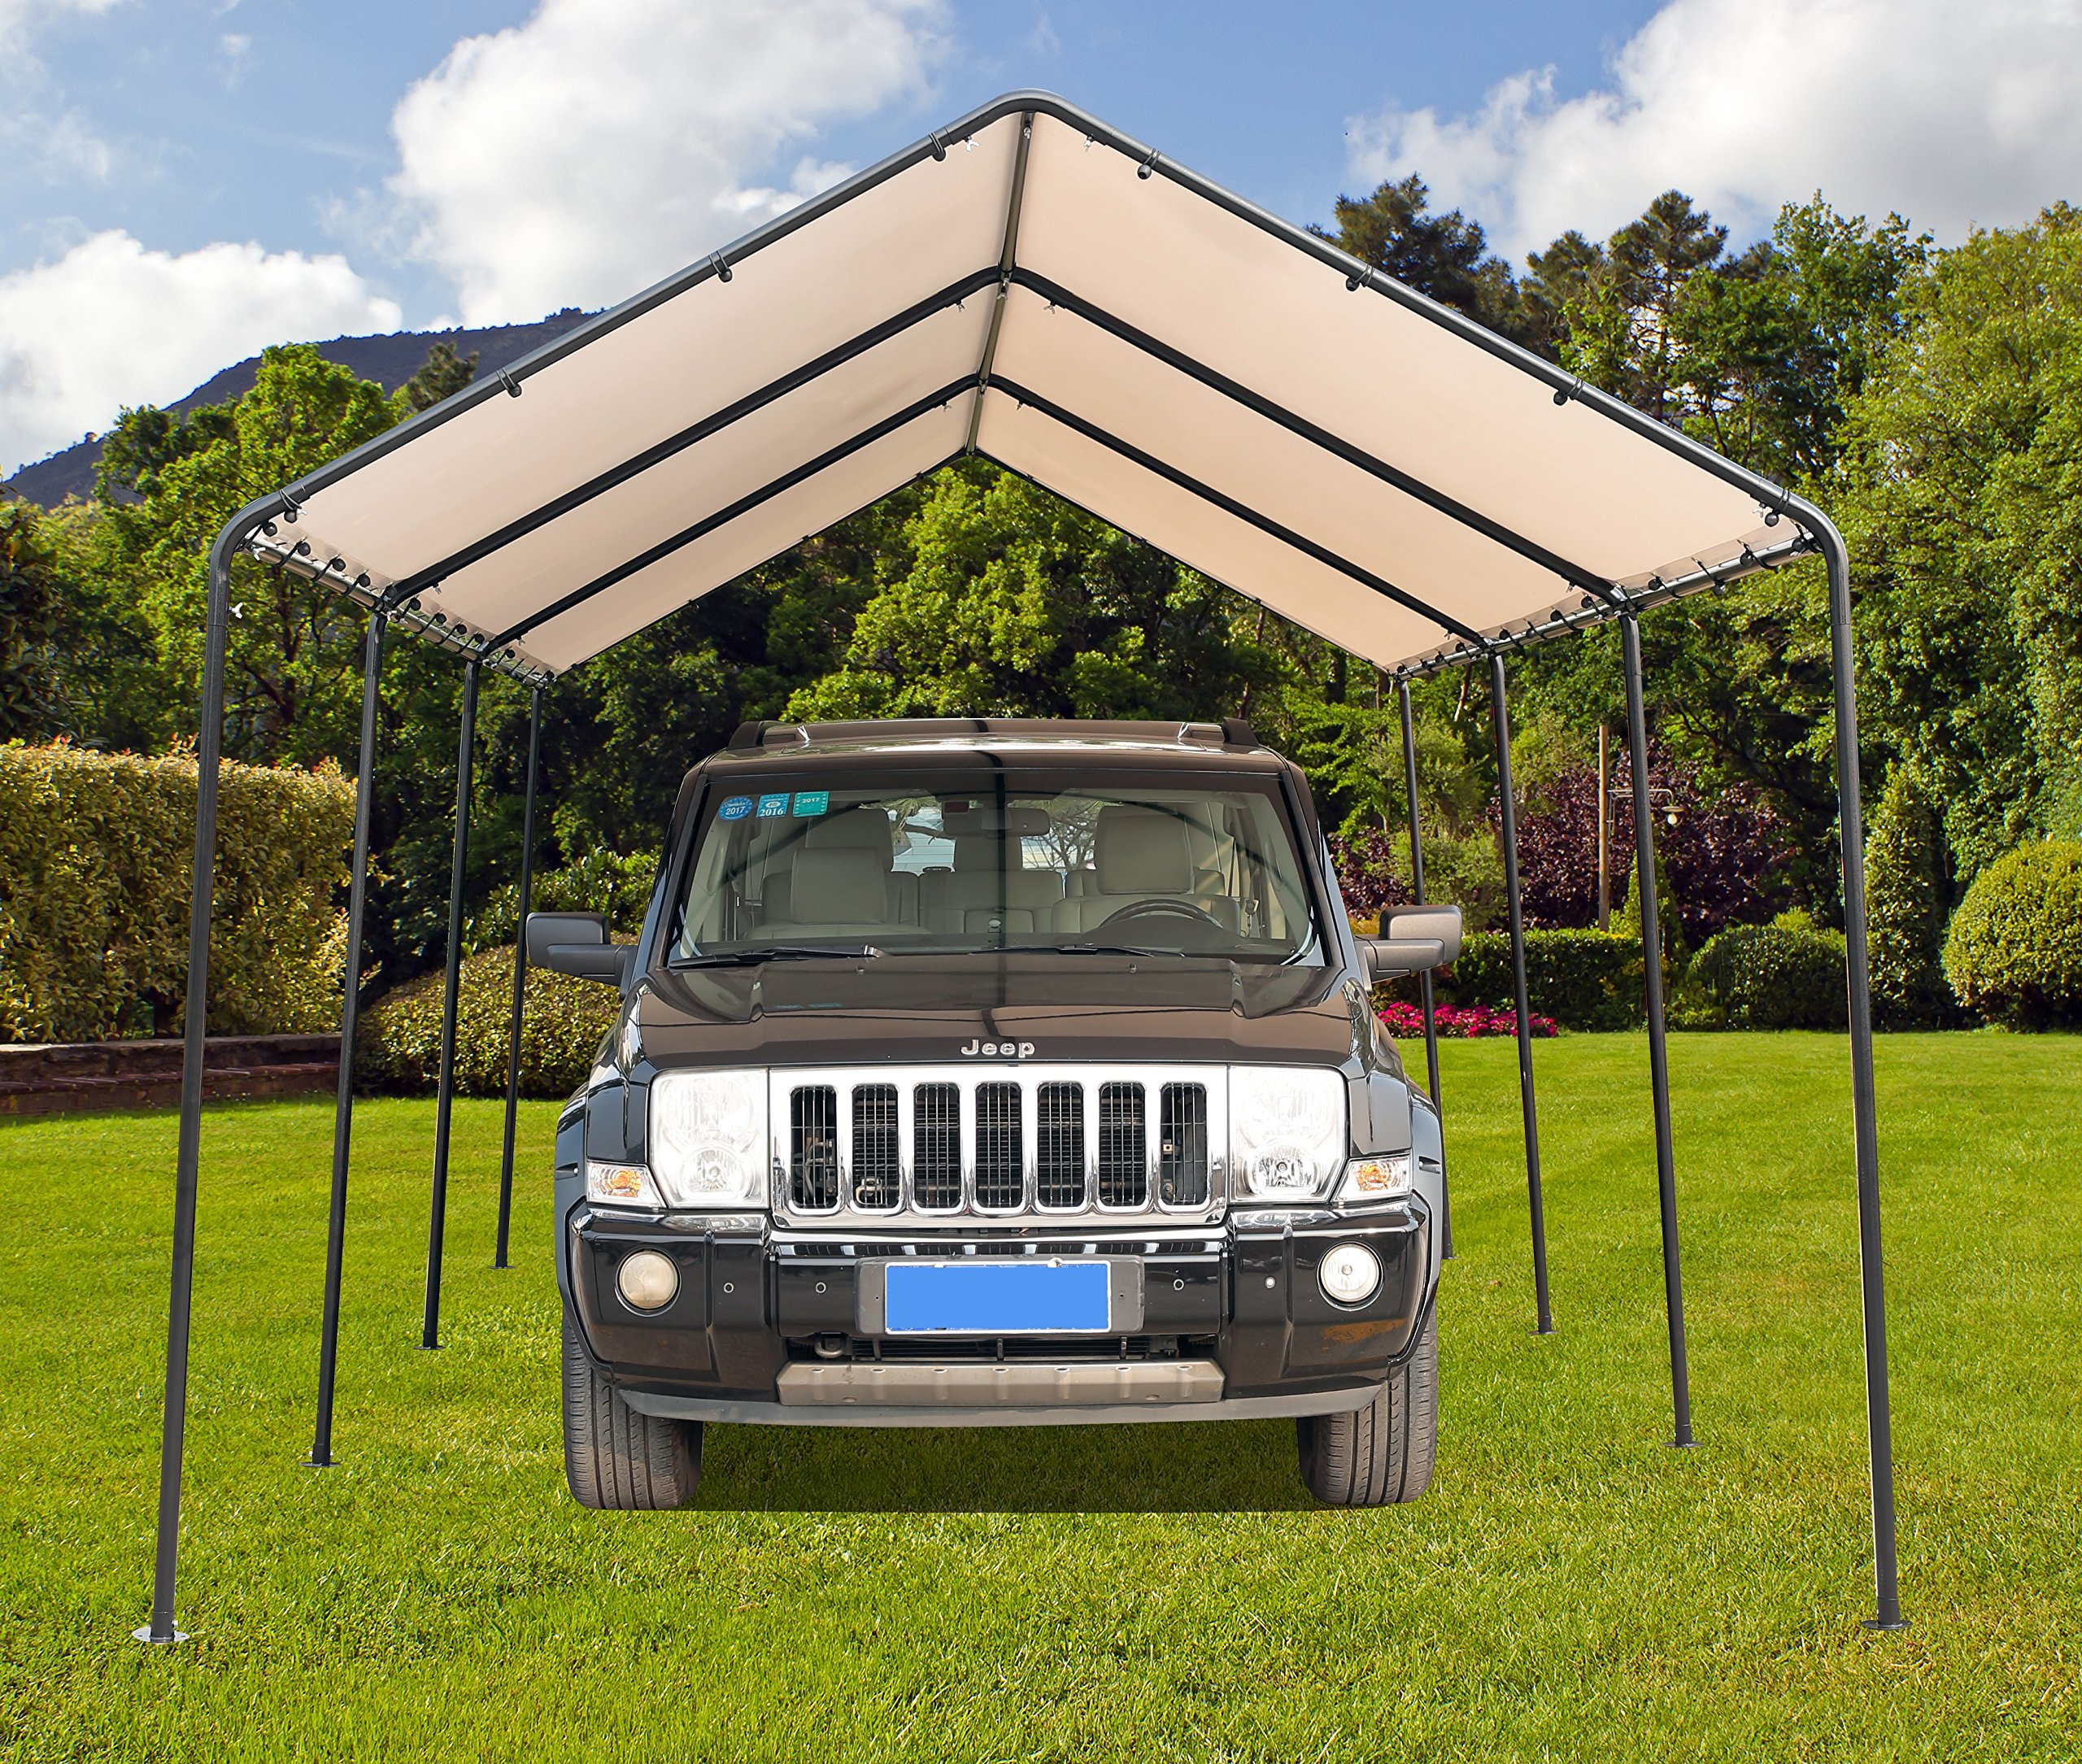 SORARA Carport 10' x 20' Outdoor Car Canopy Gazebo with 8 Steel Legs, White by SORARA